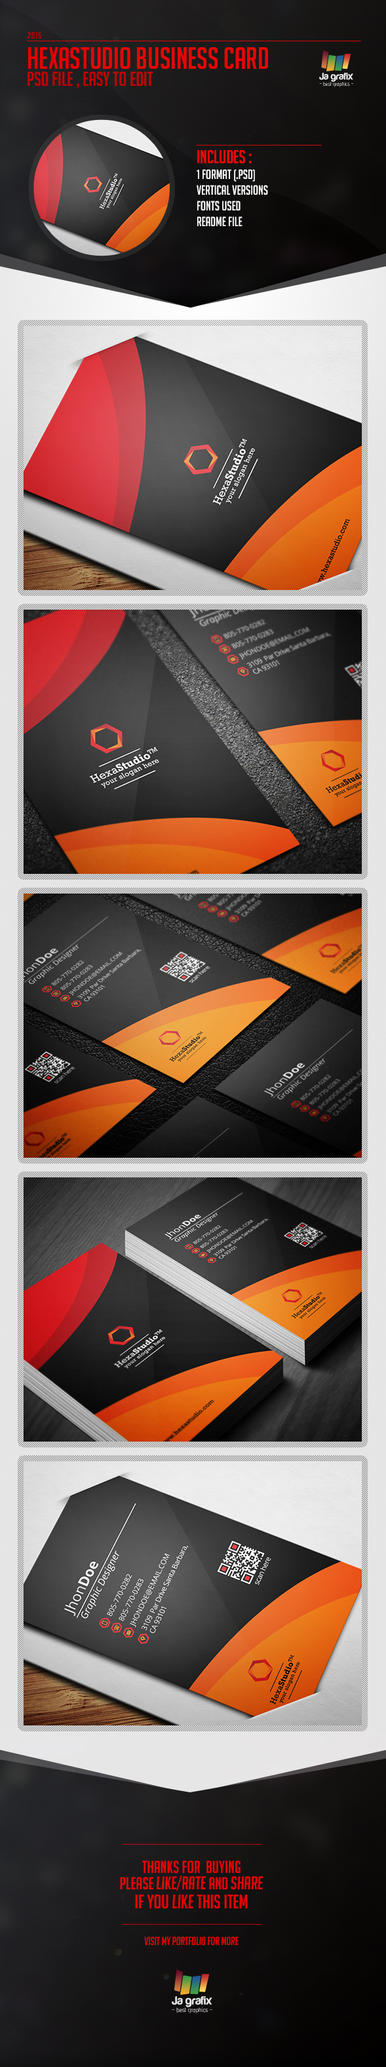 HexaStudio Business Card [PSD] by Ja-Ghraphics